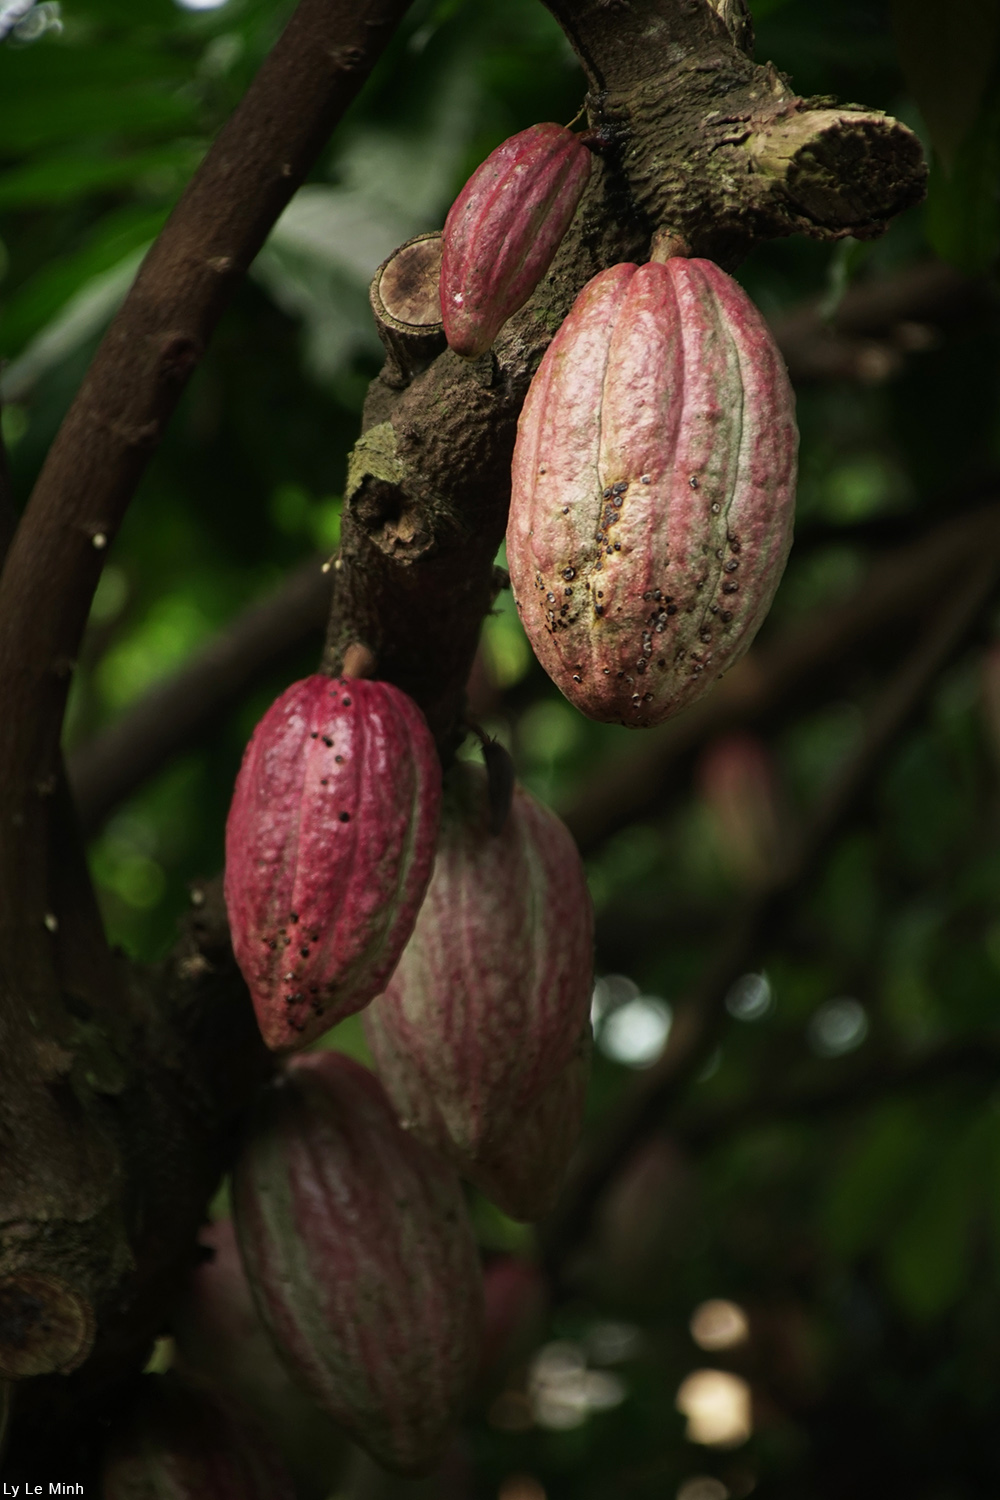 cacao pods hanging from a branch